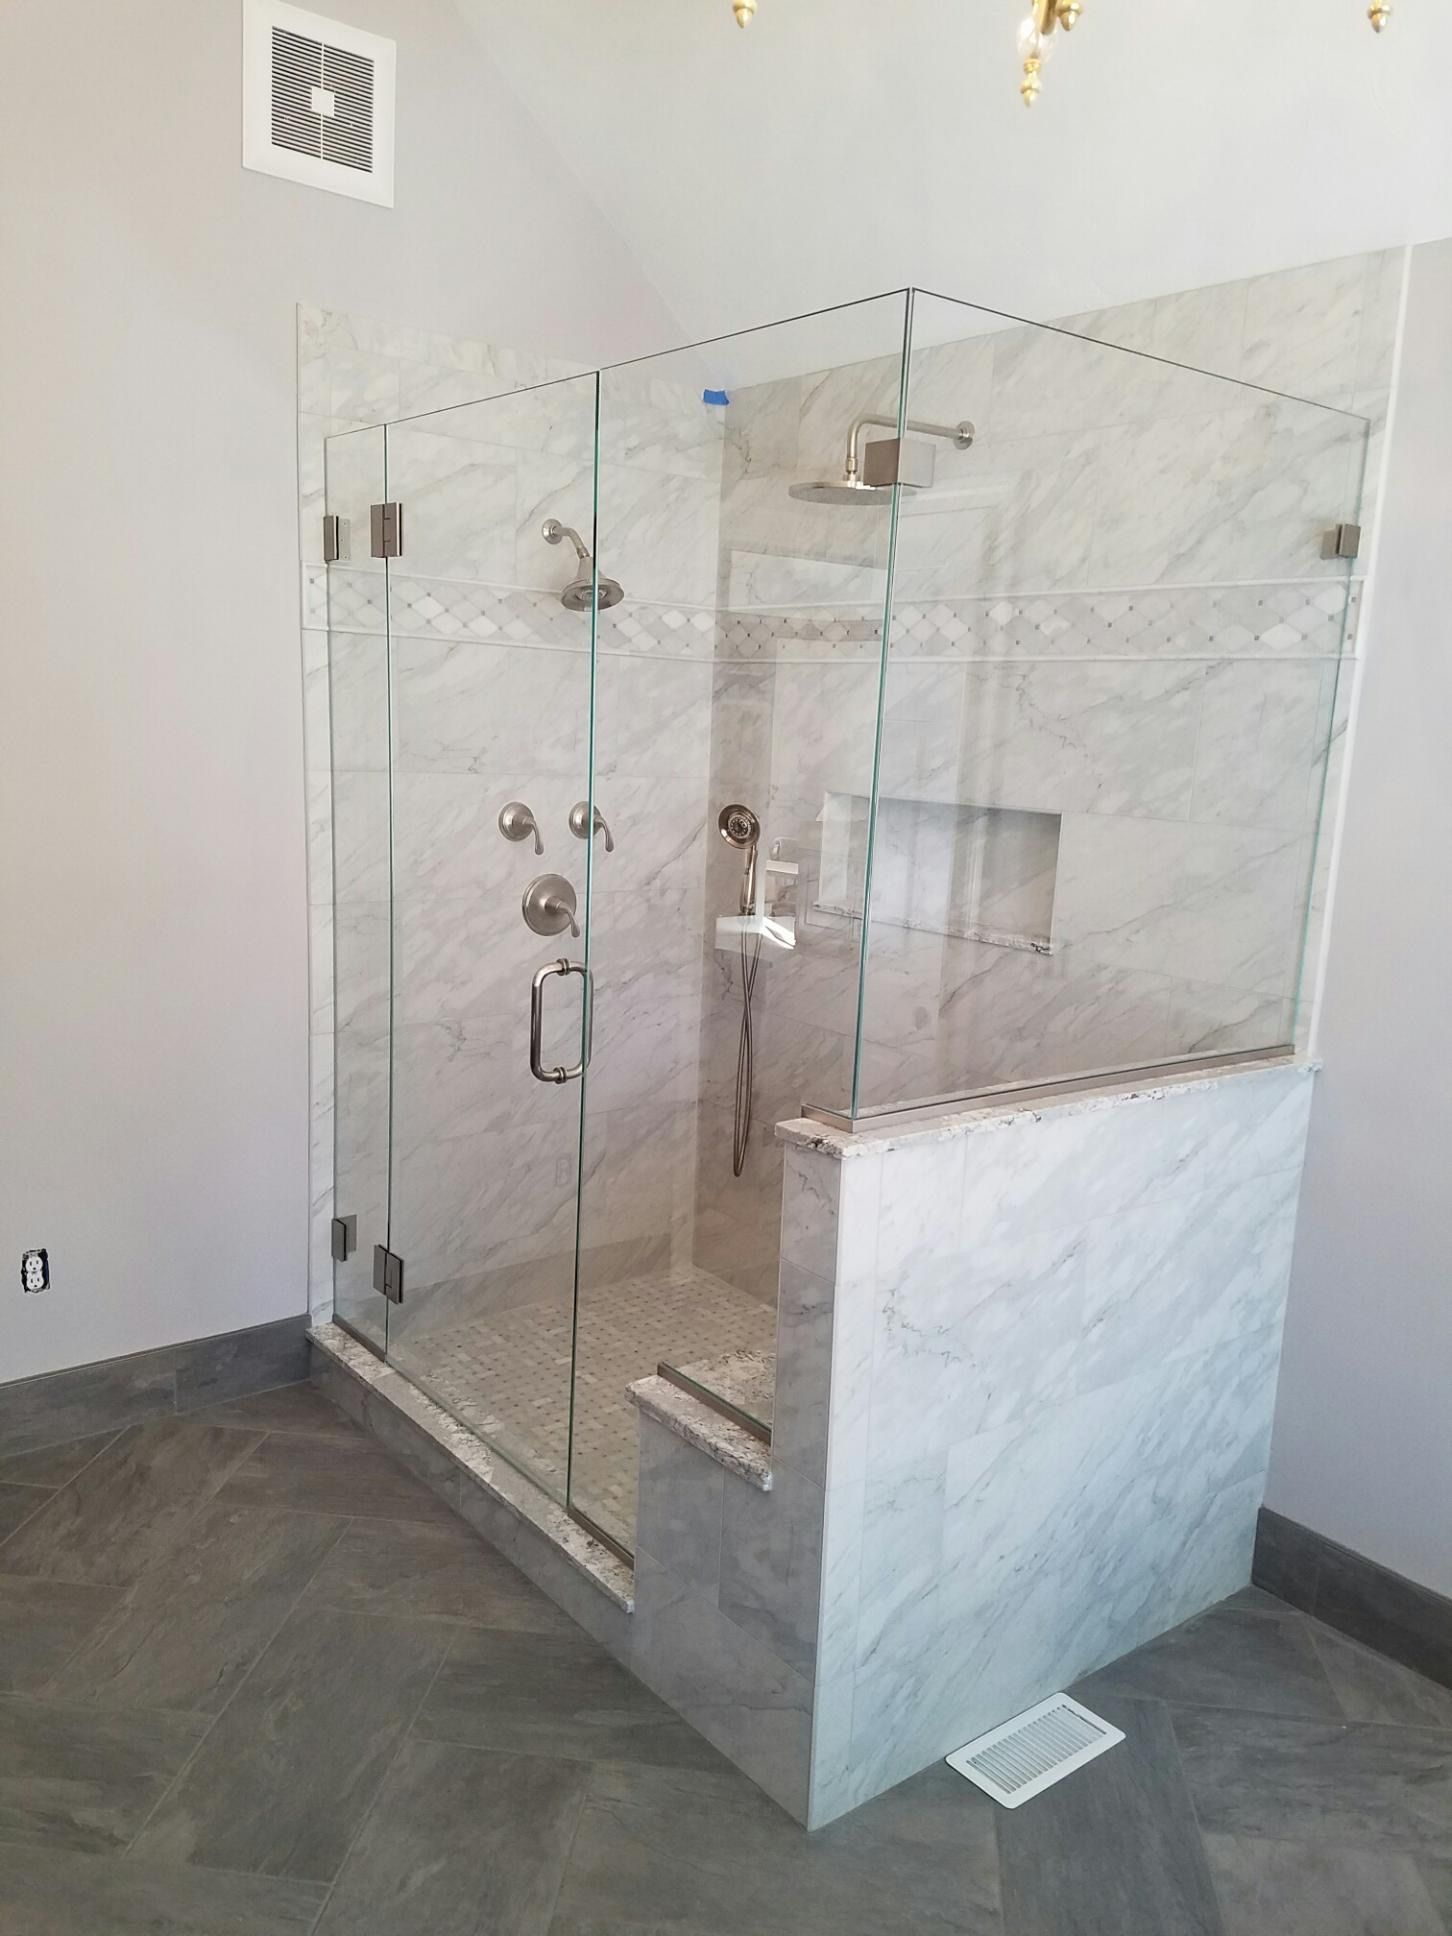 1 2 Starphire Glass Door Hinged Off Sidelite Notched Side Nib Return Panel Glass Door Hinges Luxury Shower Glass Door